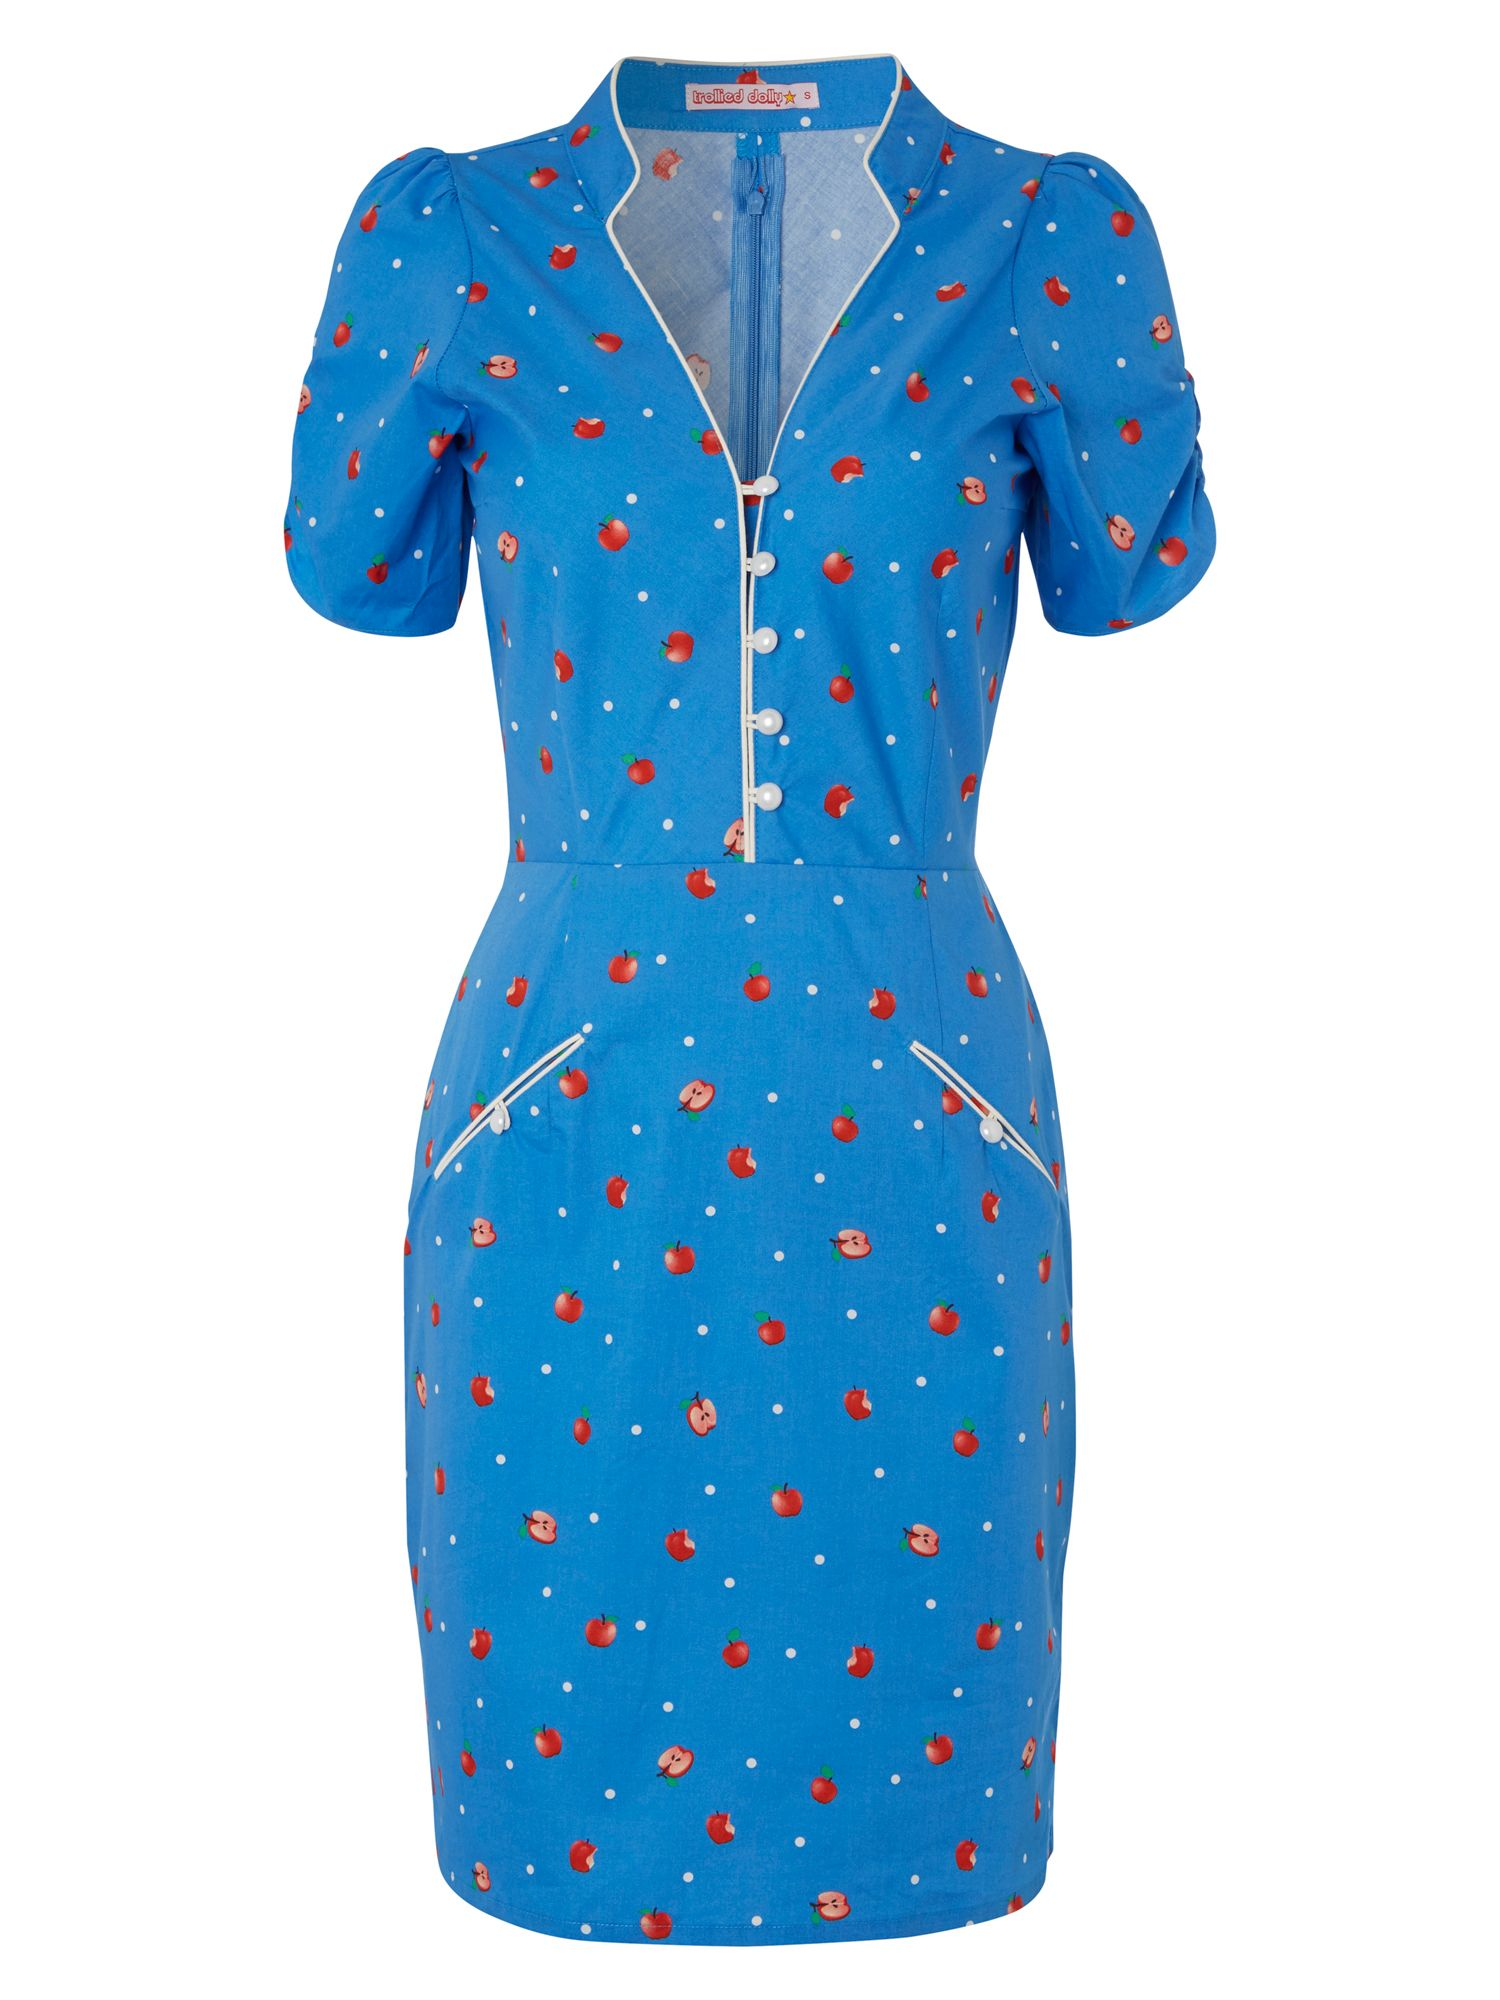 Fanciful Forties Dress